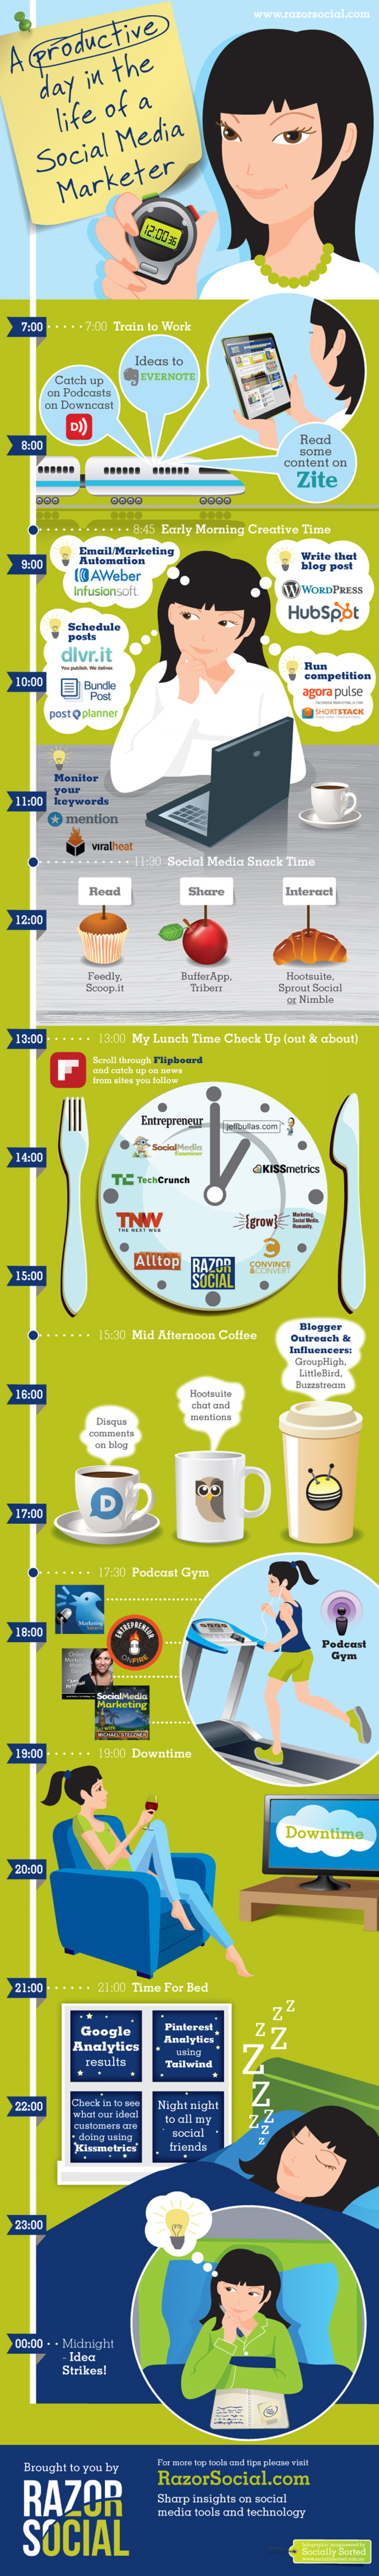 A Day in the Life of a Social Media Marketer Infographic